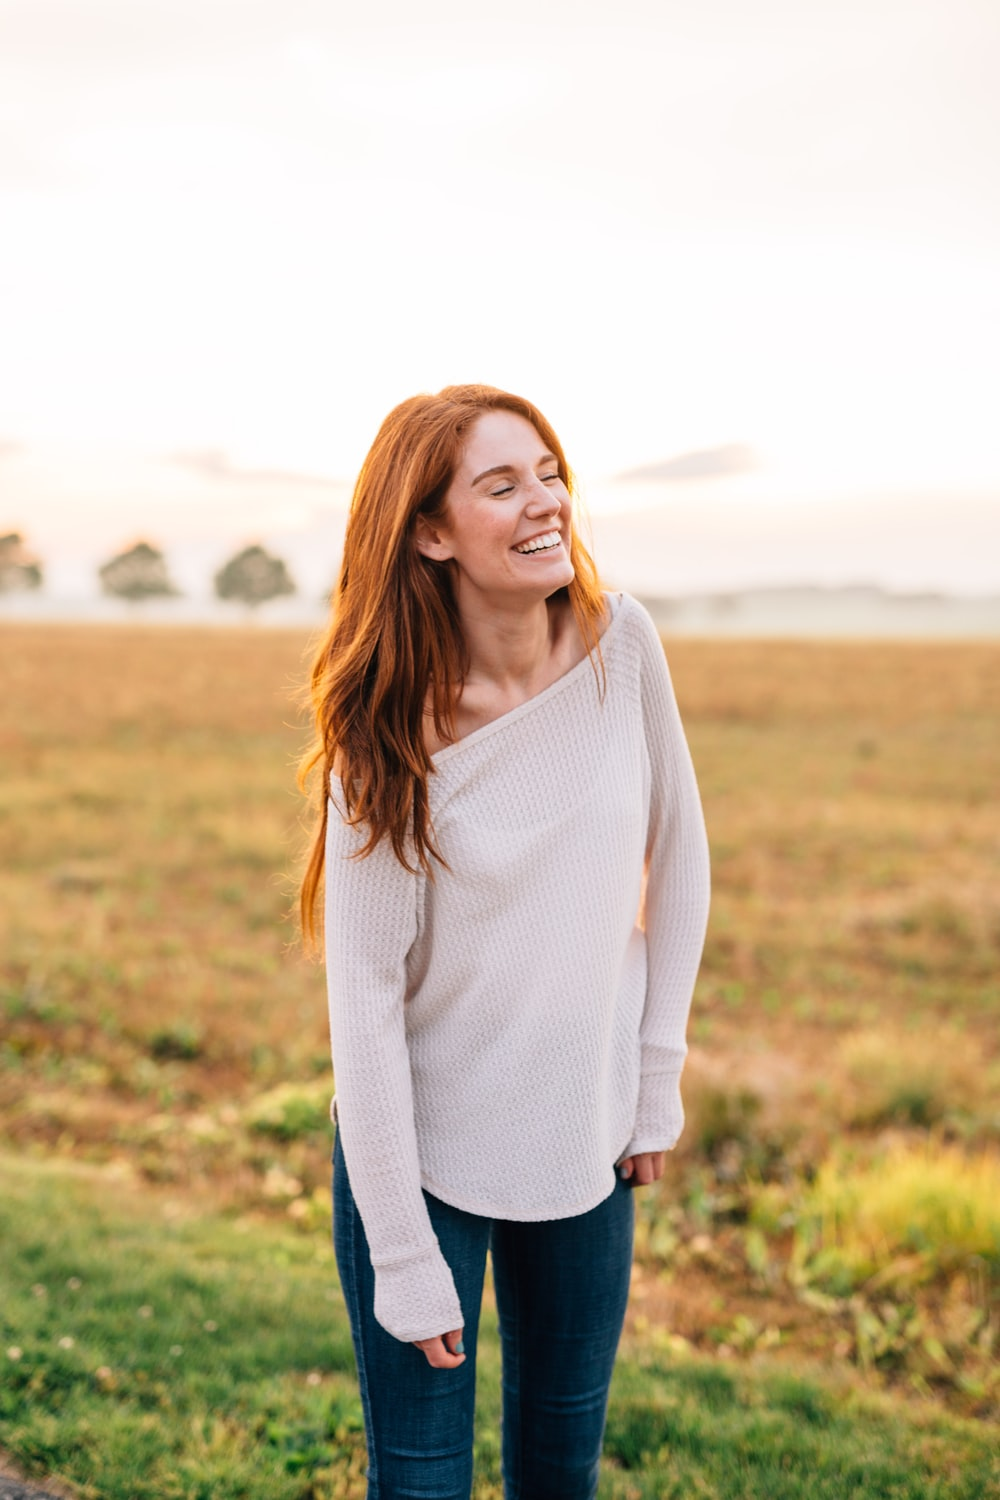 woman in white long sleeve shirt and blue denim jeans standing on green grass field during